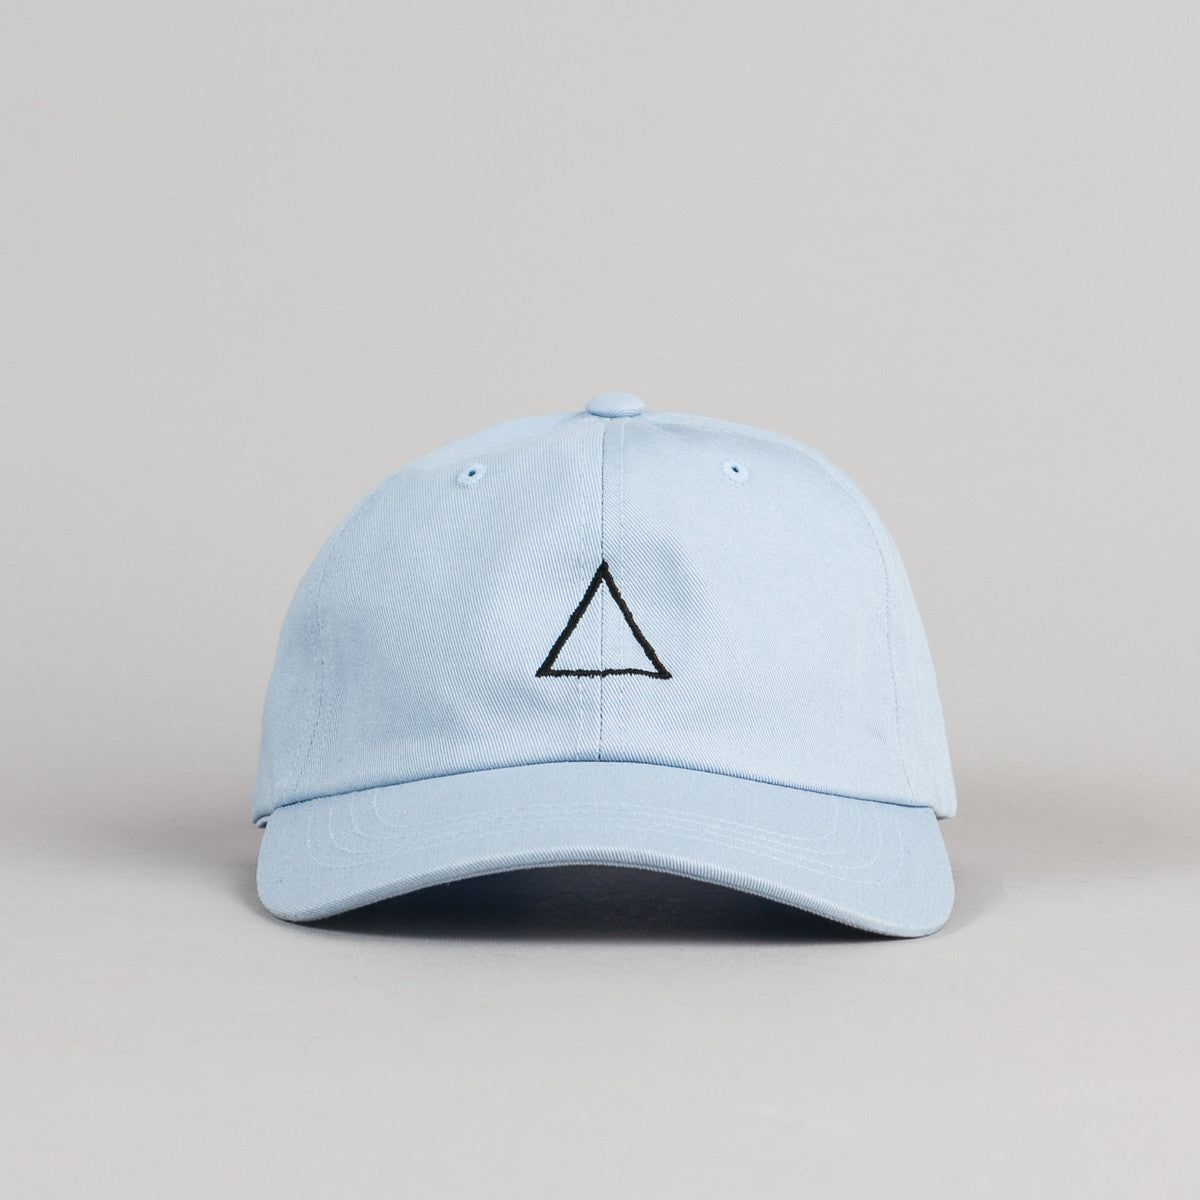 The Quiet Life X Saucony Triangle Dad Hat - Light Blue